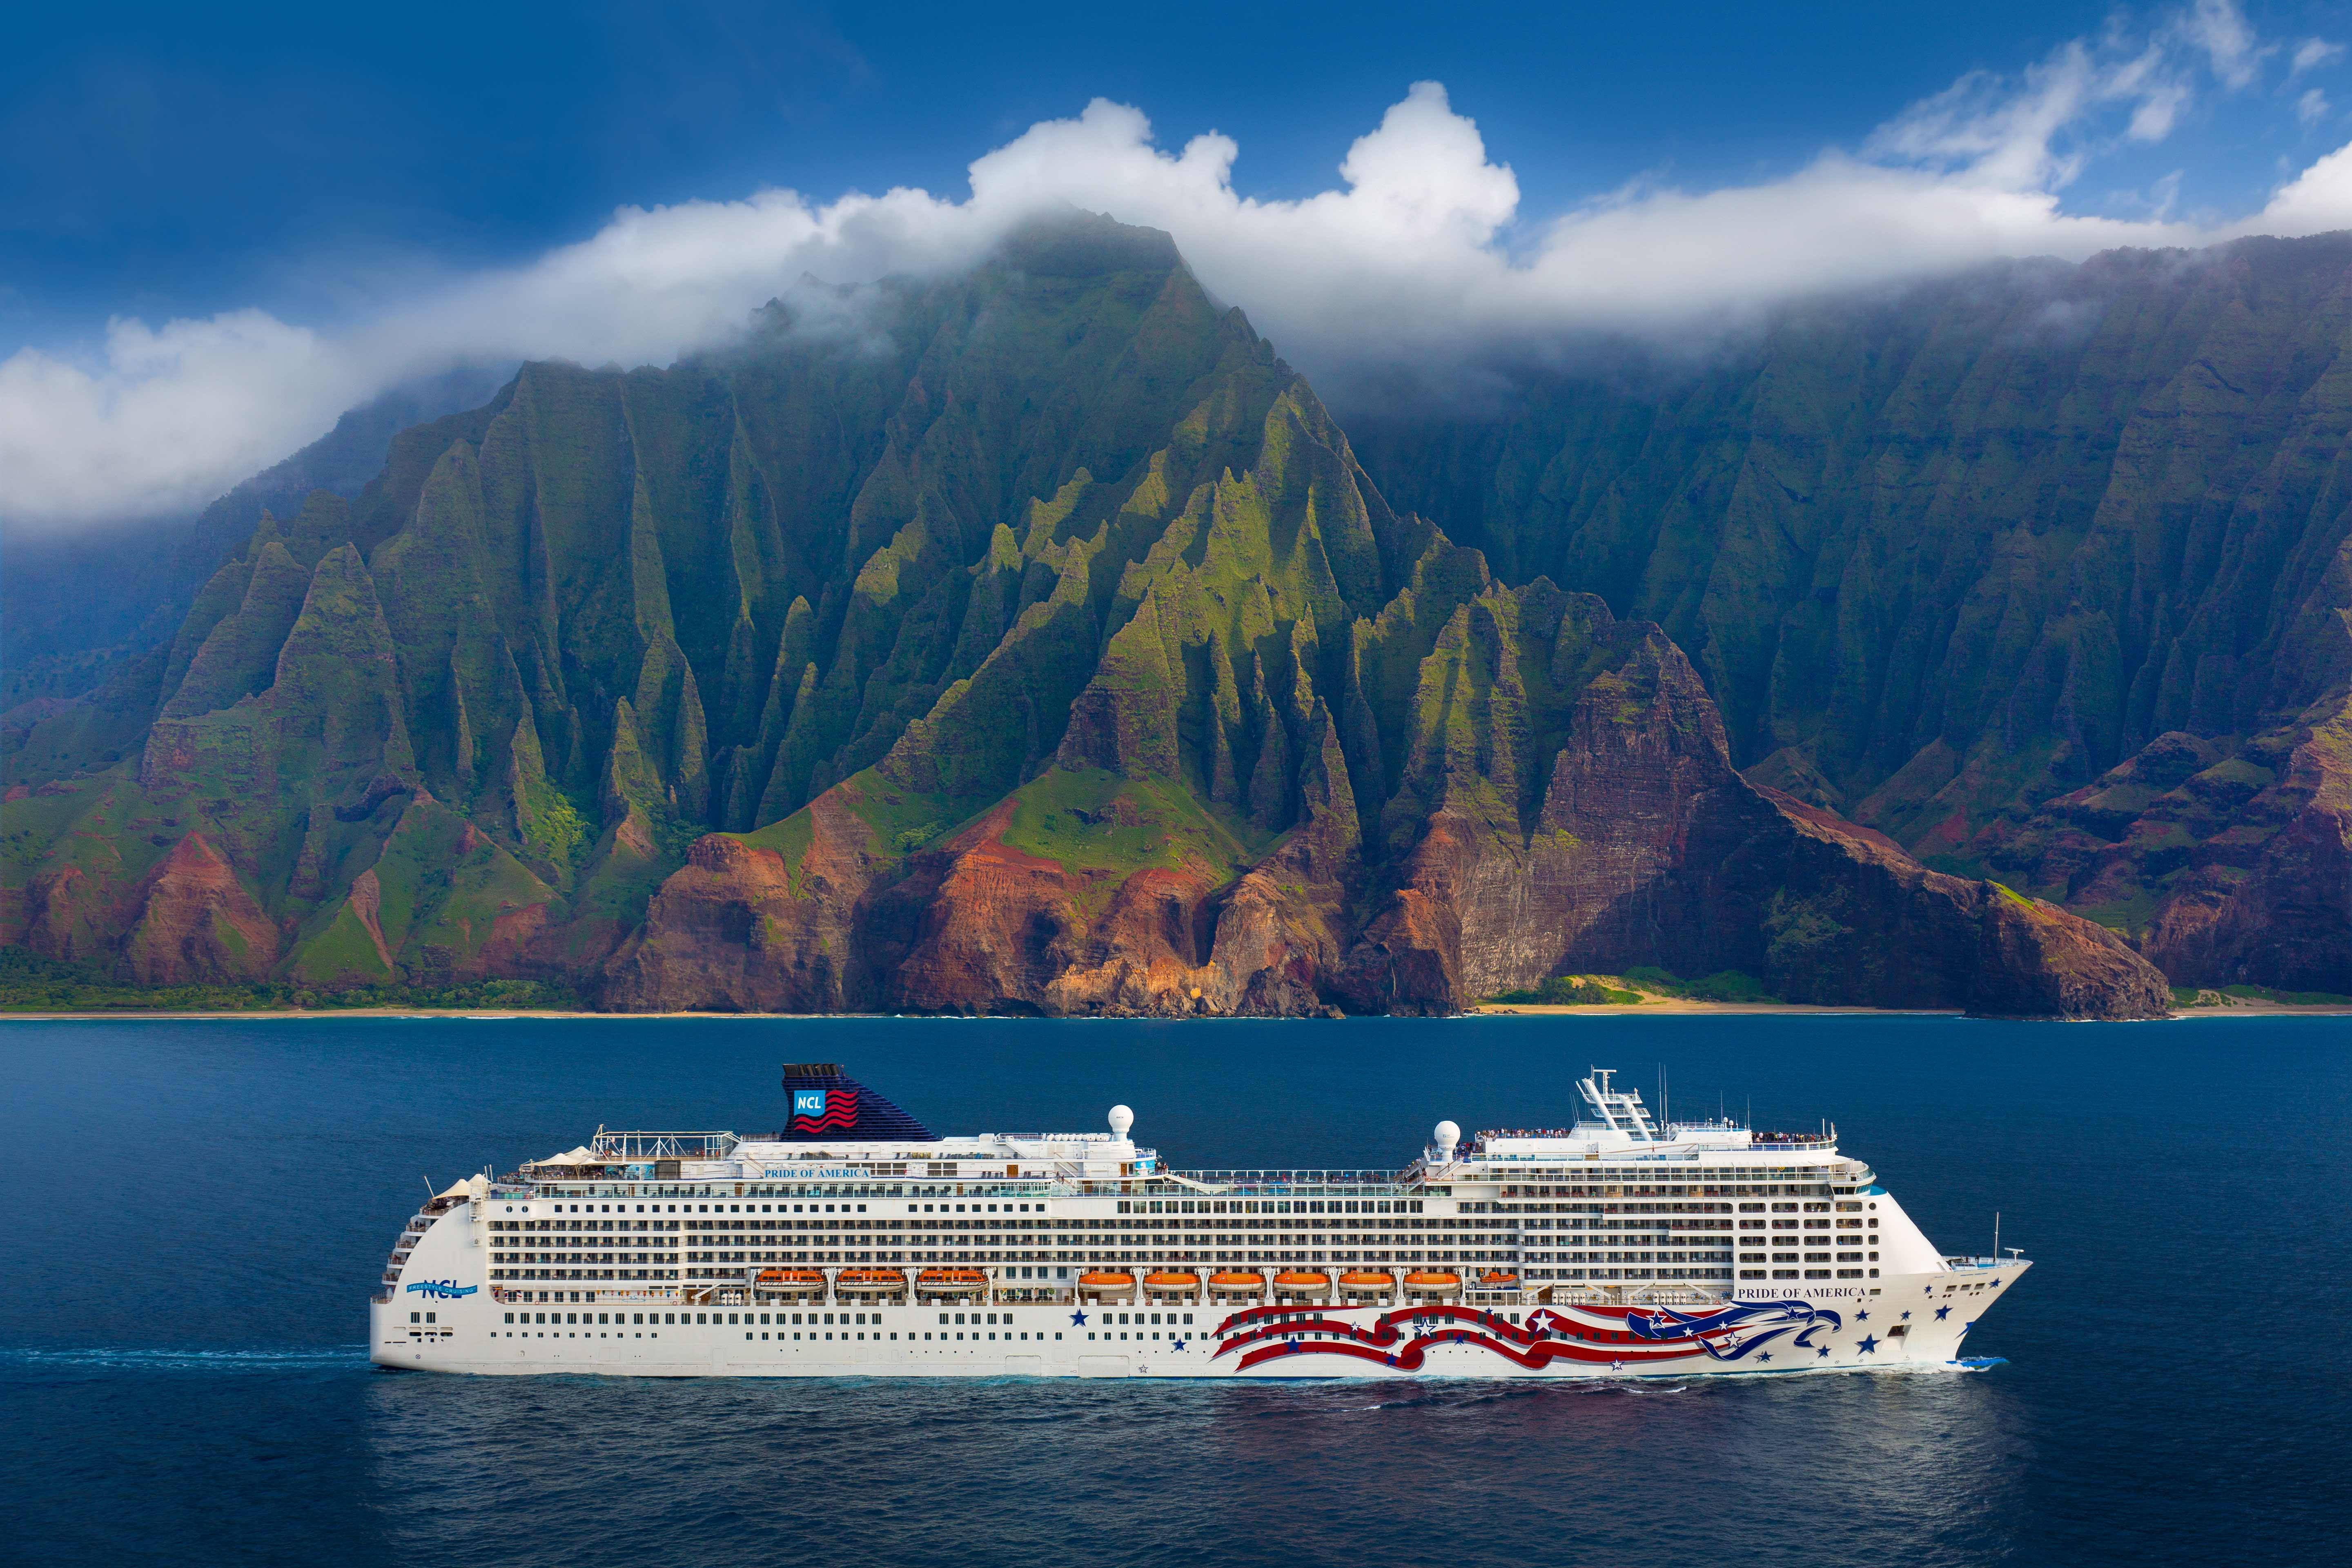 Journey up and down the east coast, west coast, and more with United States cruises